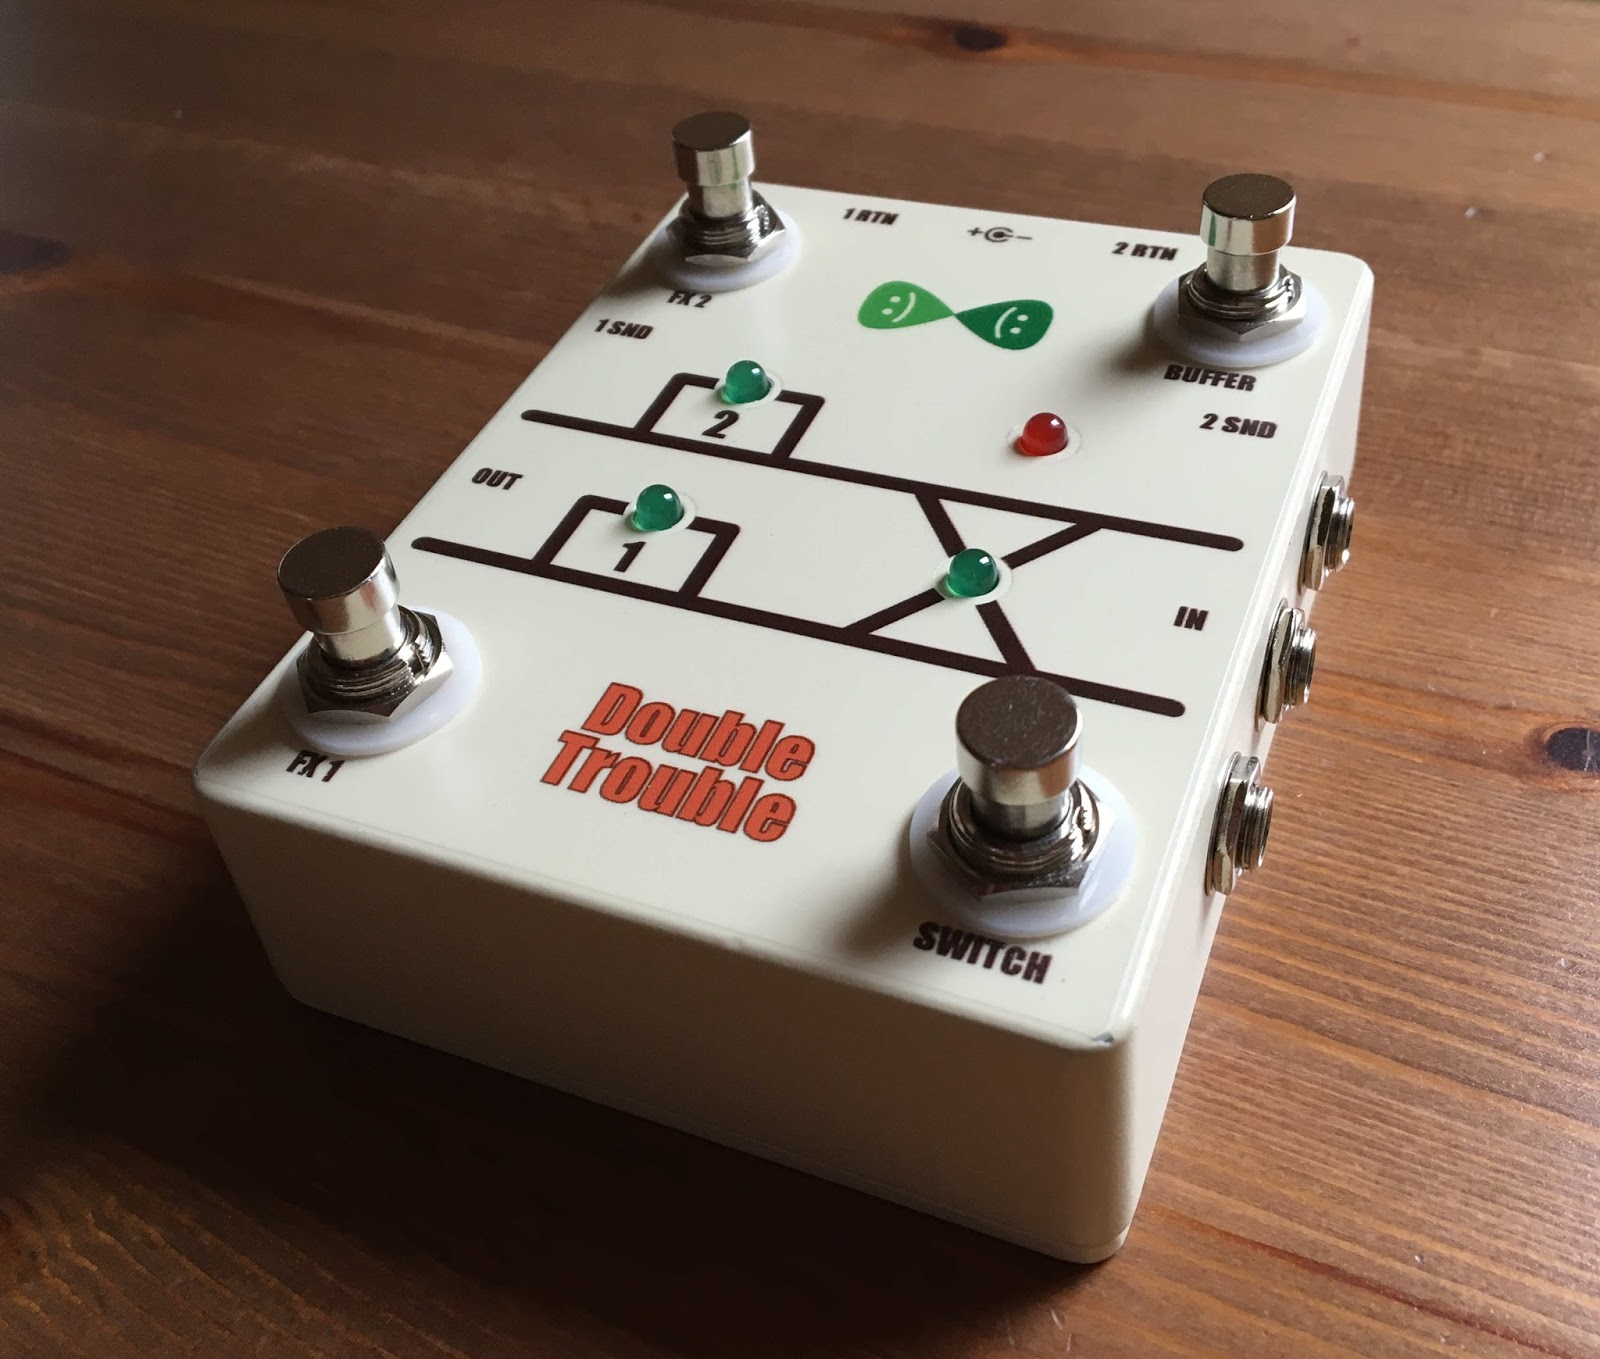 Toms Guitar Projects Sub Wiring Two Amps There Are Independent Single Jfet Buffer Circuits Inside One For Each Channel The Buffers True By Pass Using Relais This Means That If Power